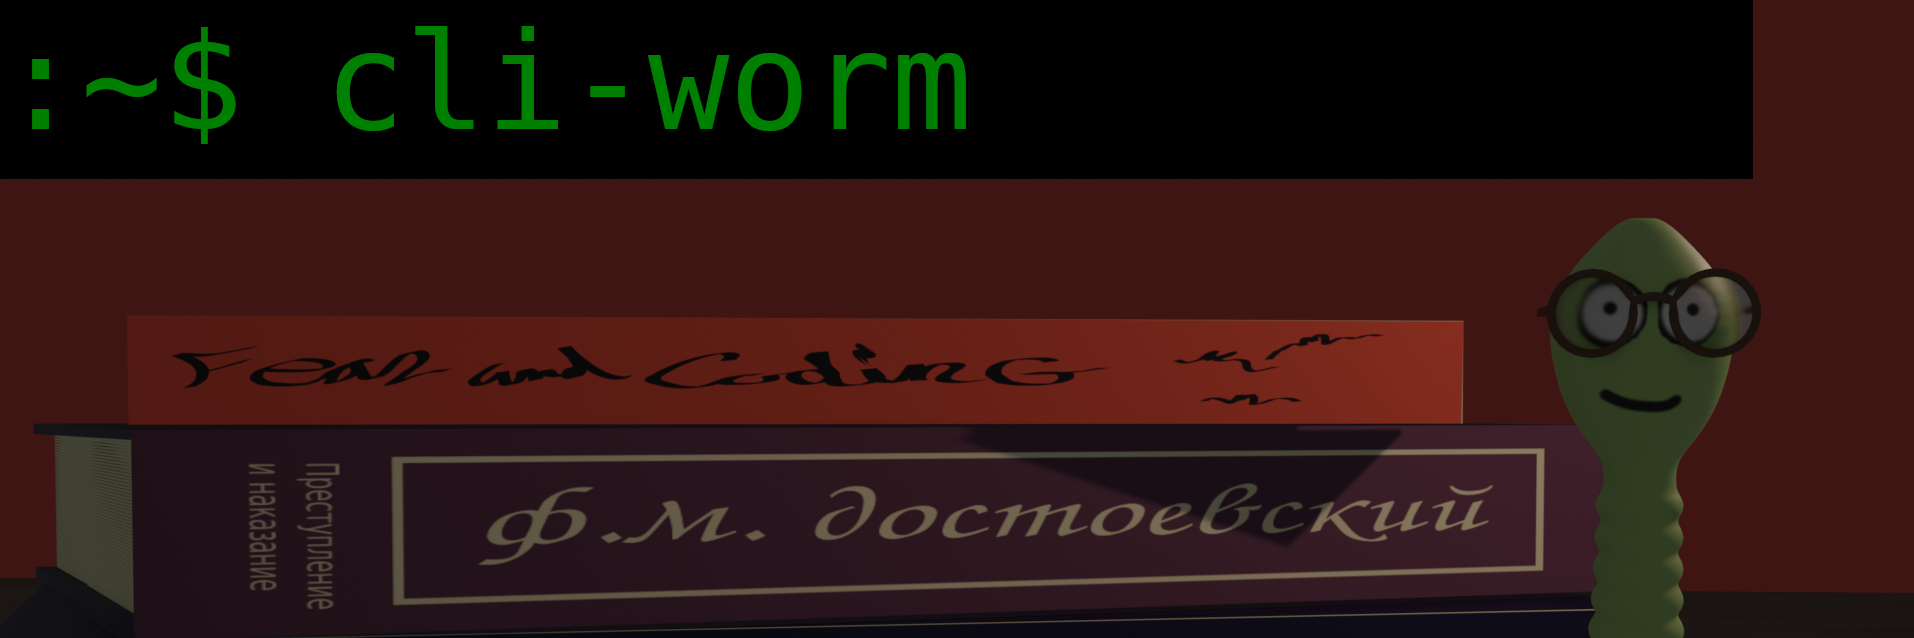 cli-worm banner